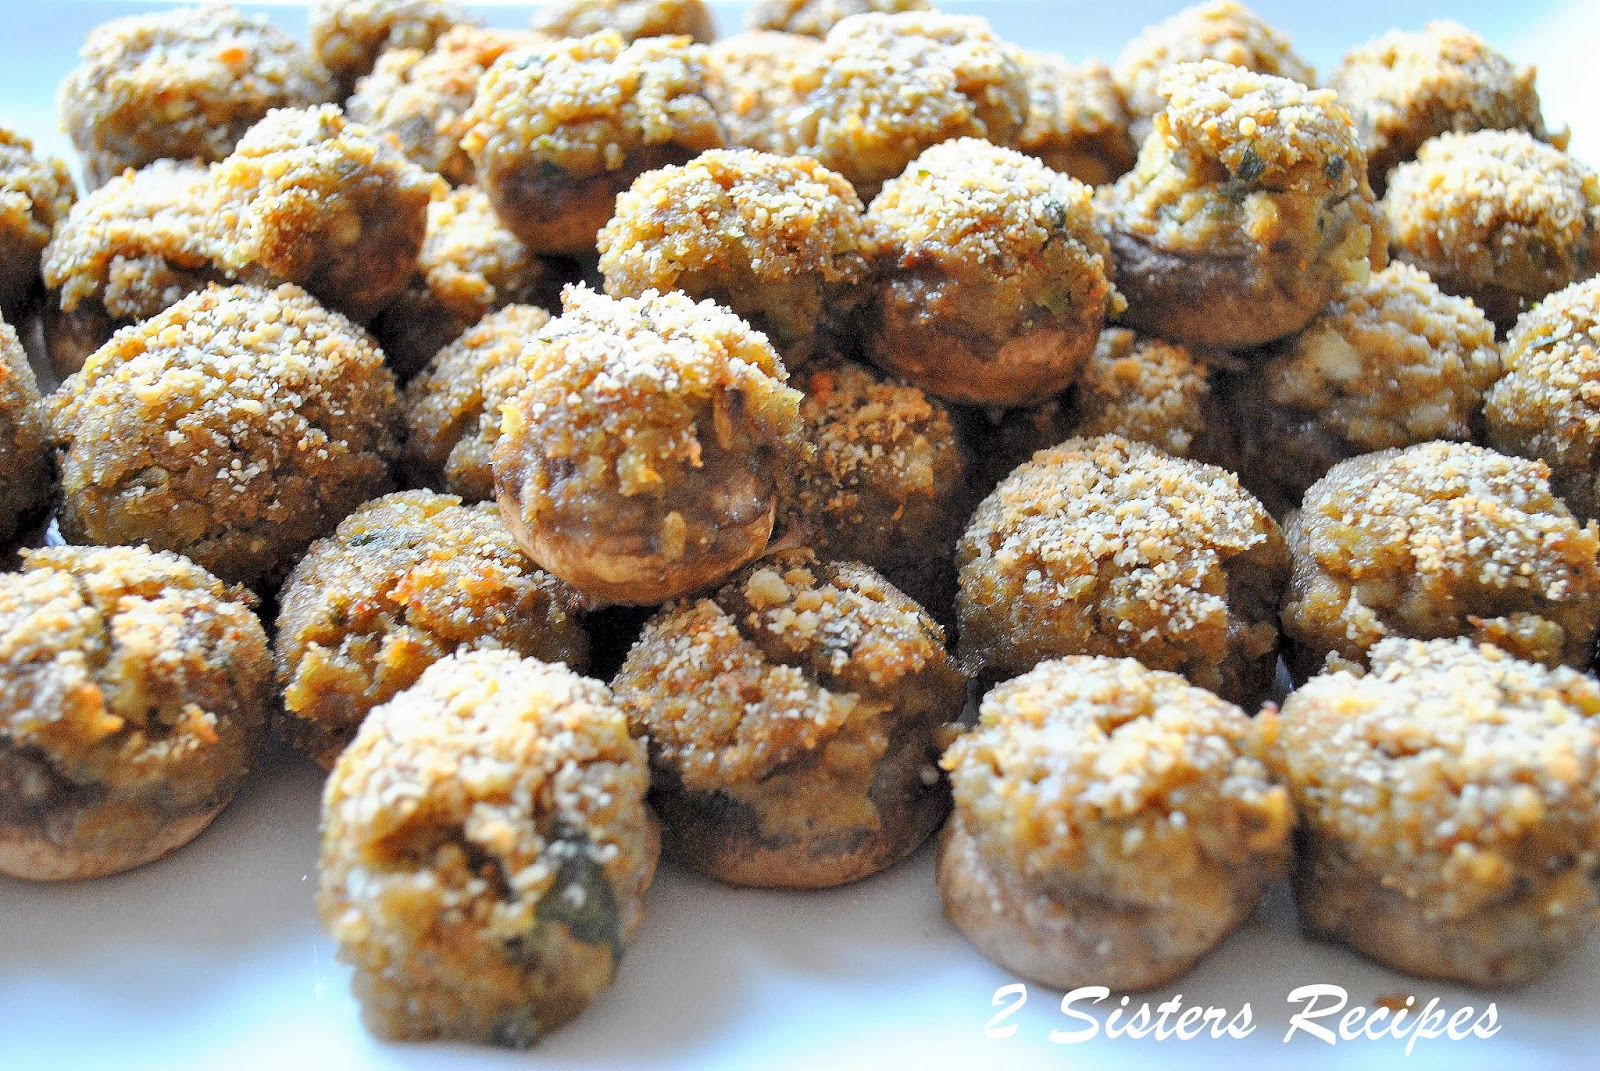 EASY Stuffed Mushrooms - 2 Sisters Recipes by Anna and Liz